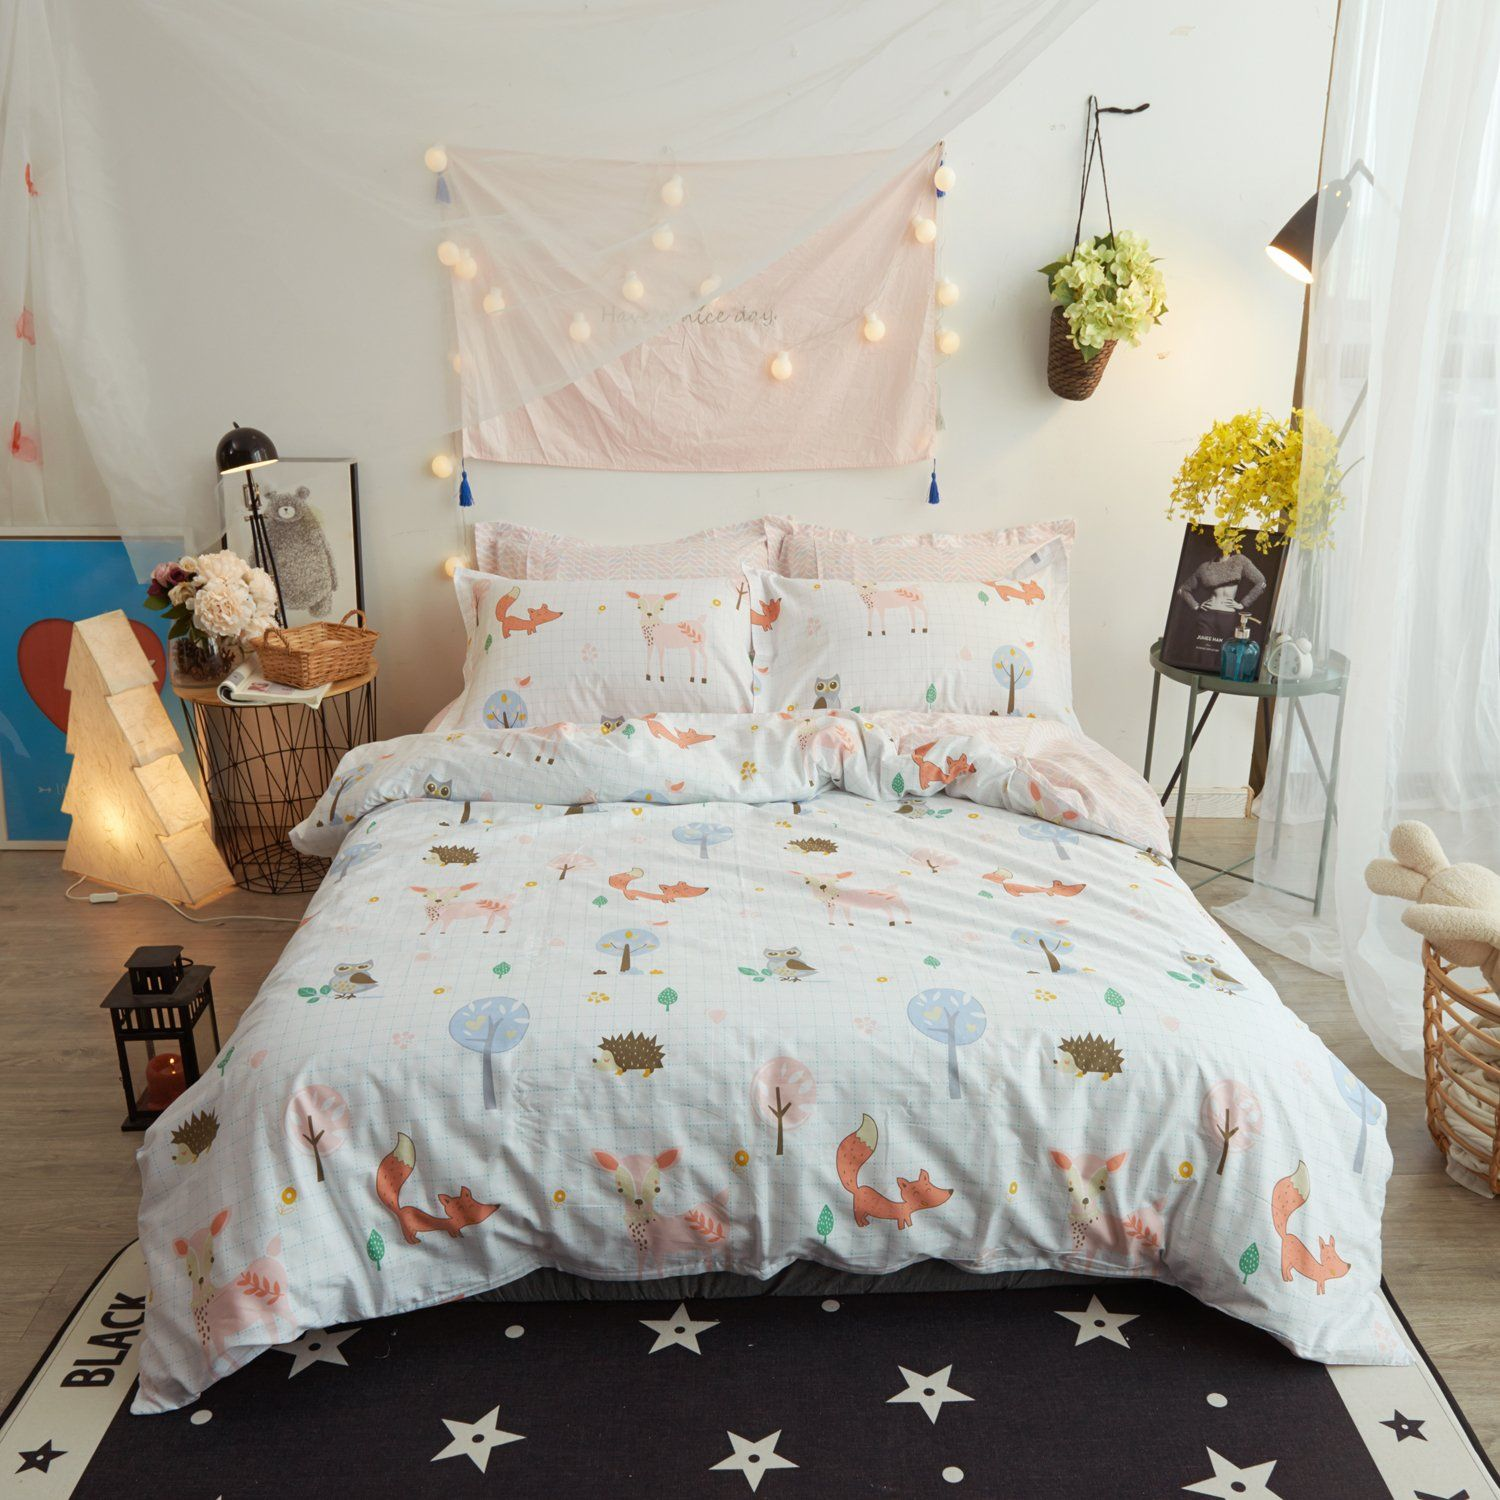 duvet size kohphiphi hypoallergenic info california zipper and duvets page covers pink with cotton ties king rty silk cover comforter thread corner blue bedding double alter navy kingking of grey luxurious stripe full count by queen pillowcases white egyptian amp quilt best chenille